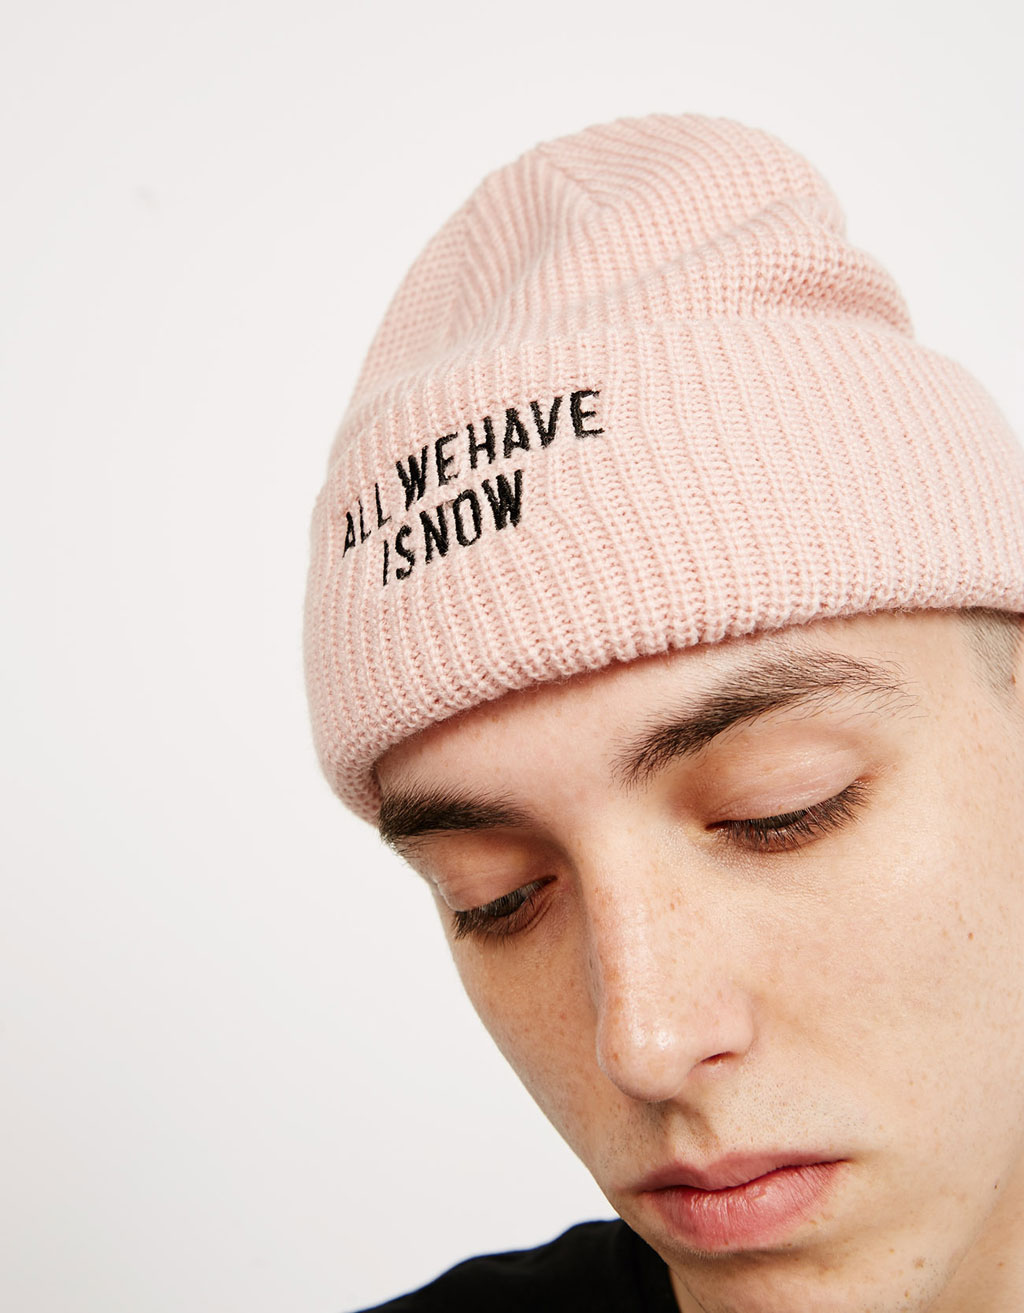 'Fisherman' embroidered beanie